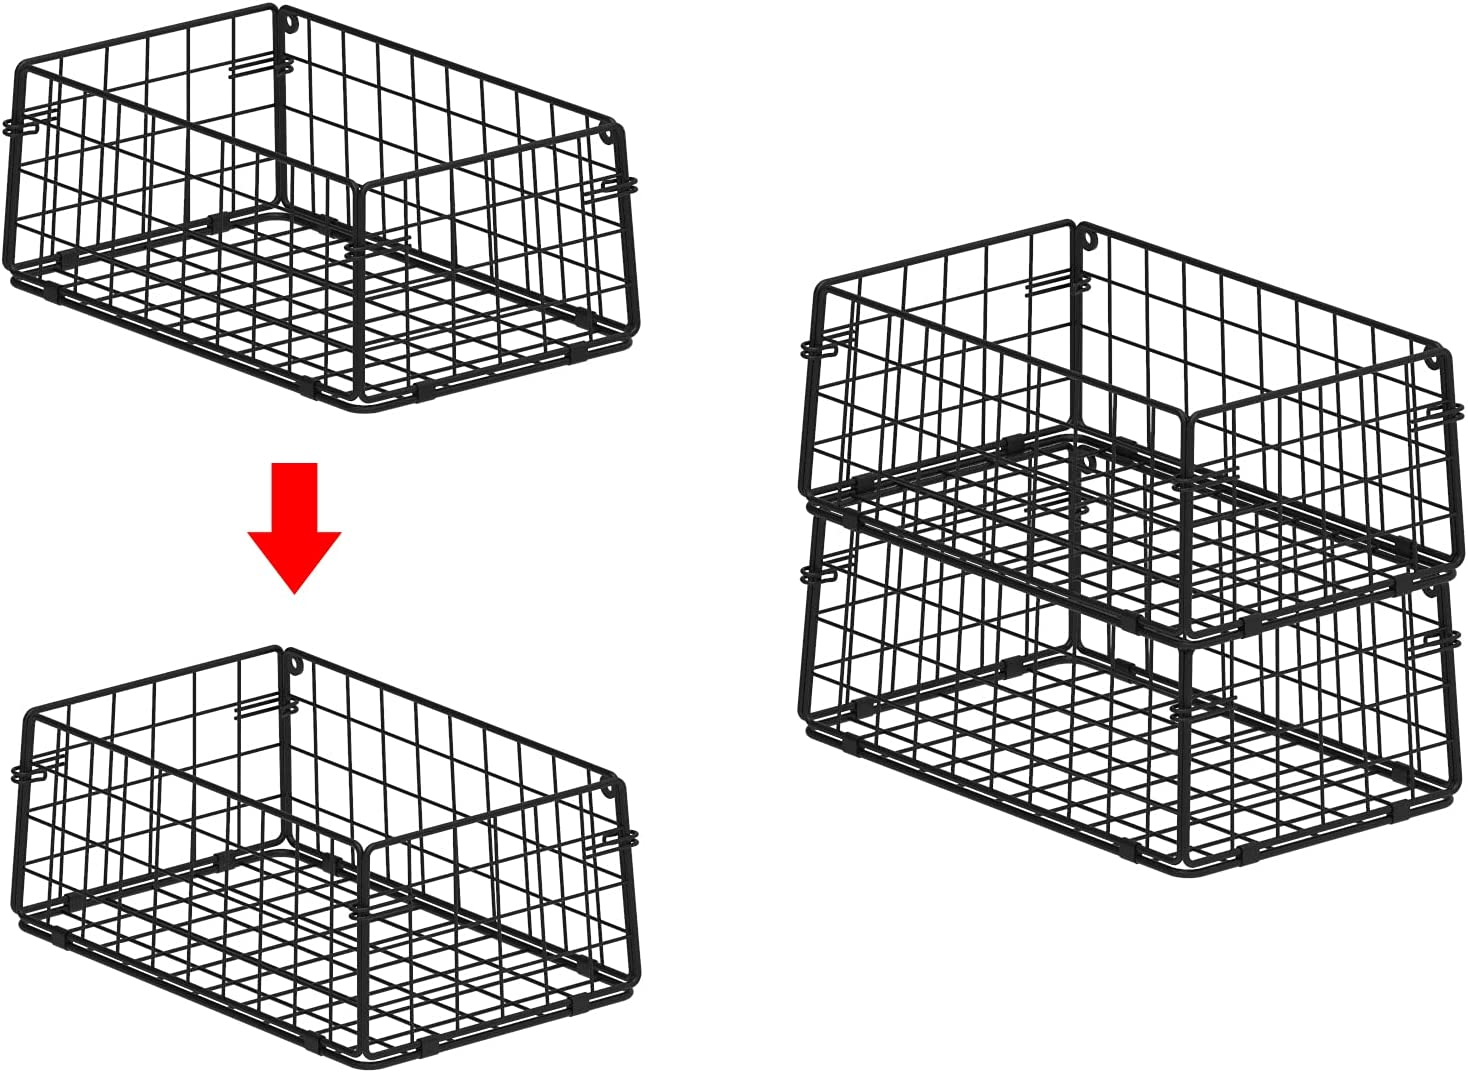 X-cosrack Stackable Pantry Baskets Organization 4 Pack-10x6x4inch, Foldable Food Storage Bins Wall Mount Snack Rack Stand, Stacking Metal Wire Basket for Countertop Cabinets kitchen